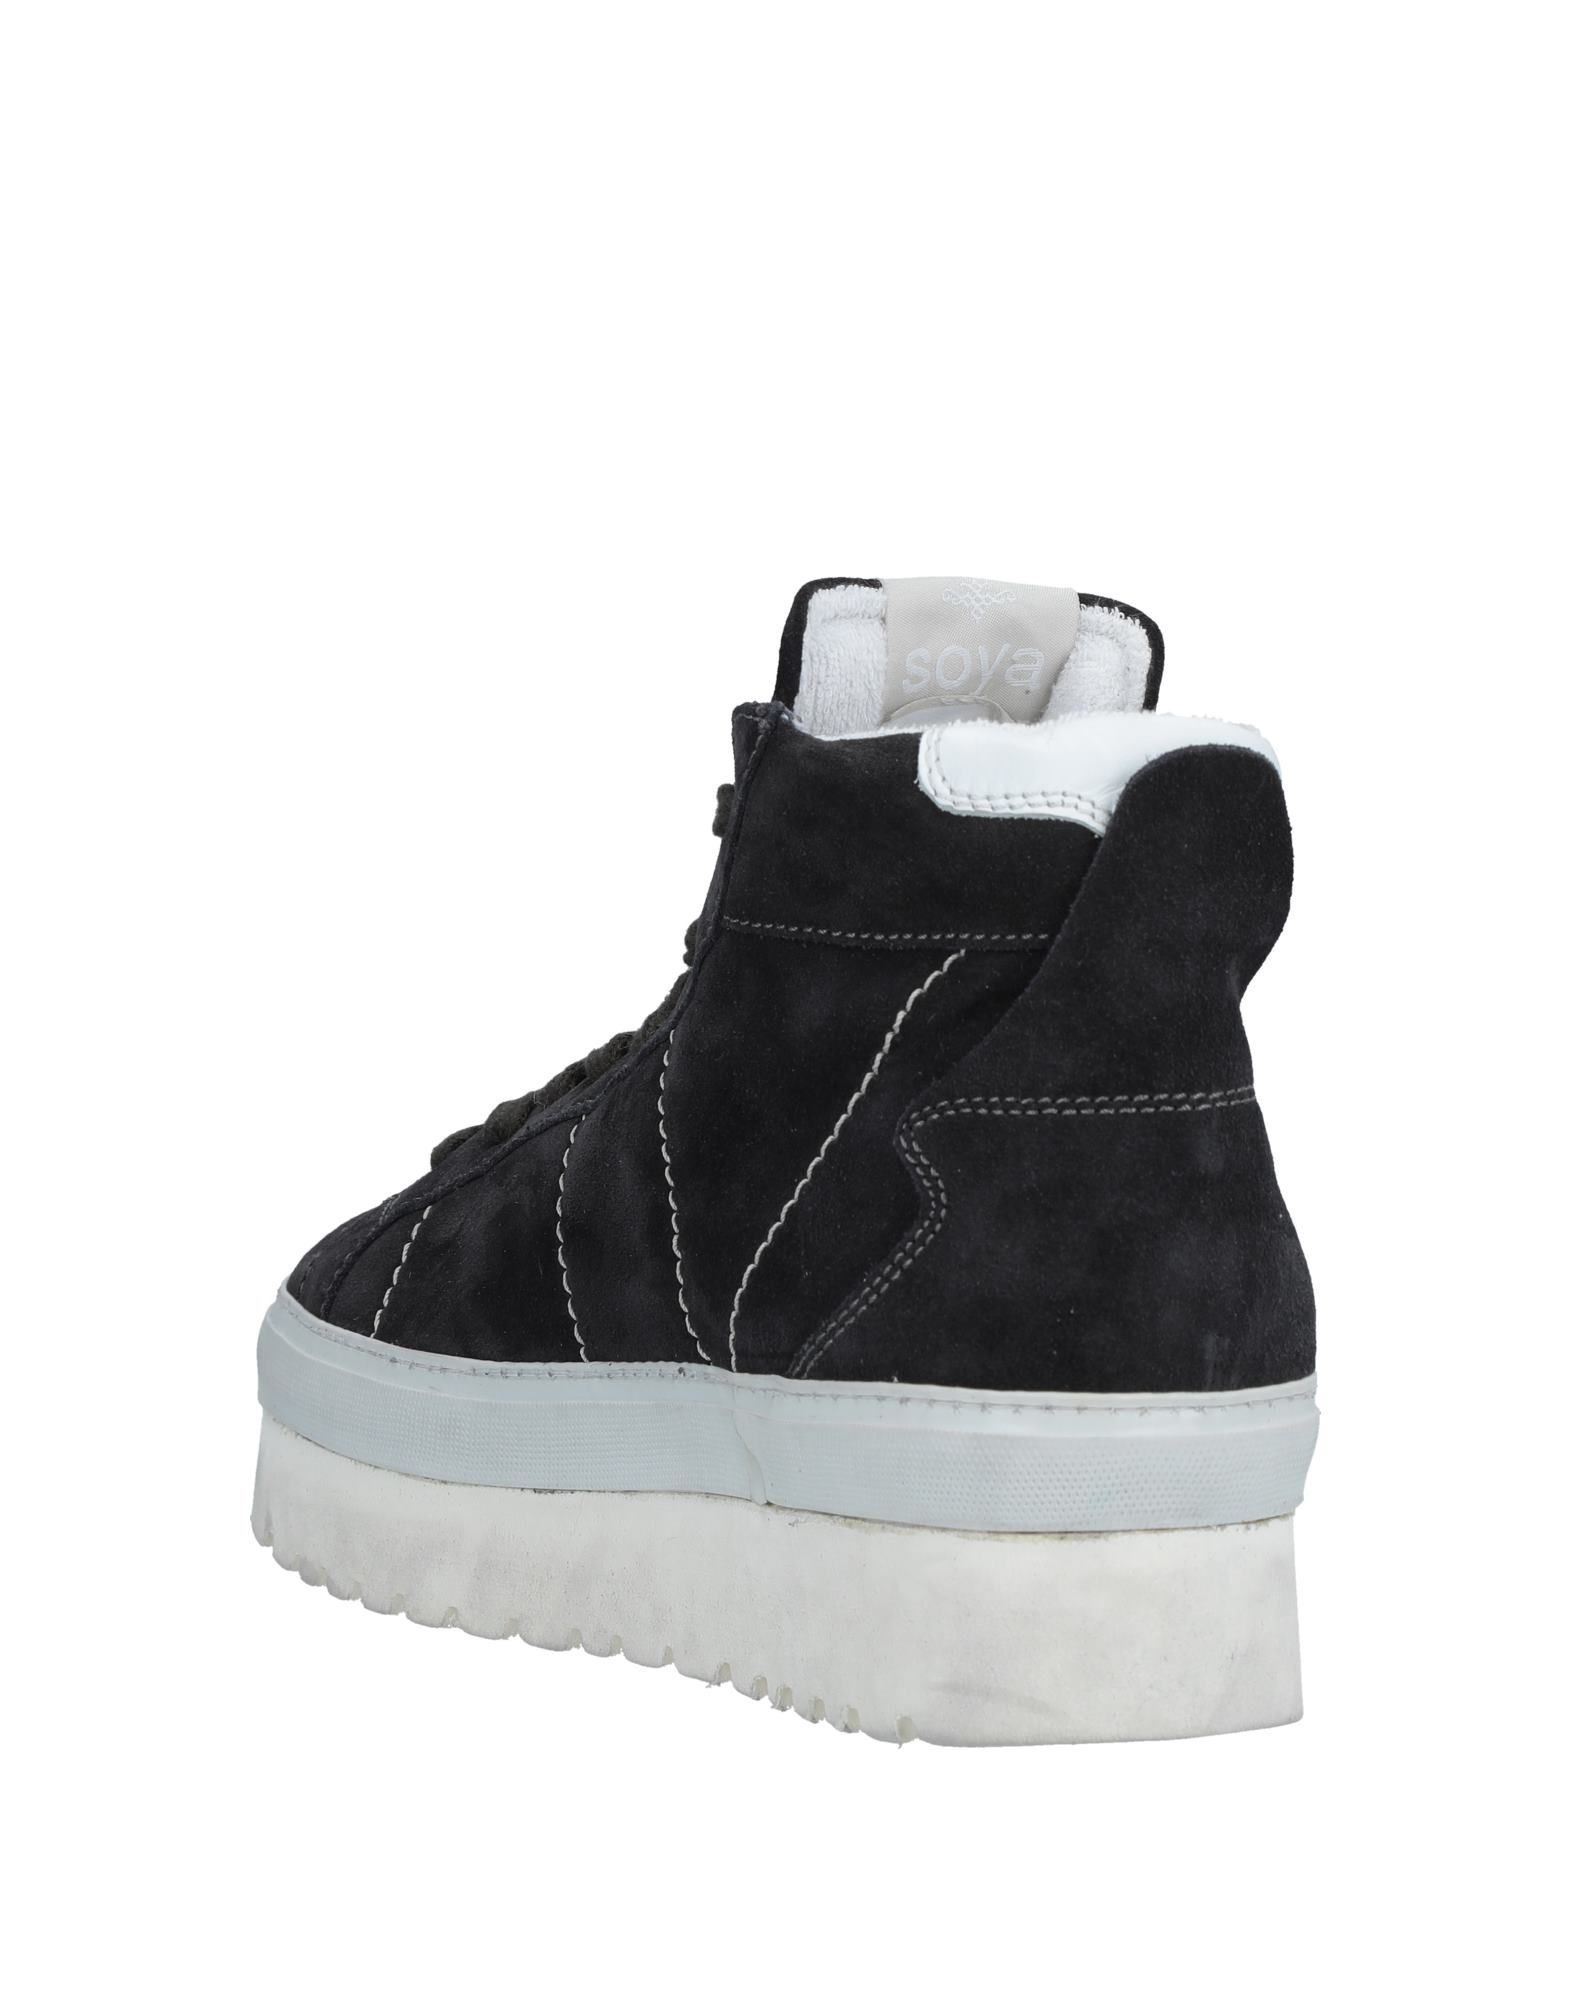 Sneakers Soya Fish Donna - 11539656SV